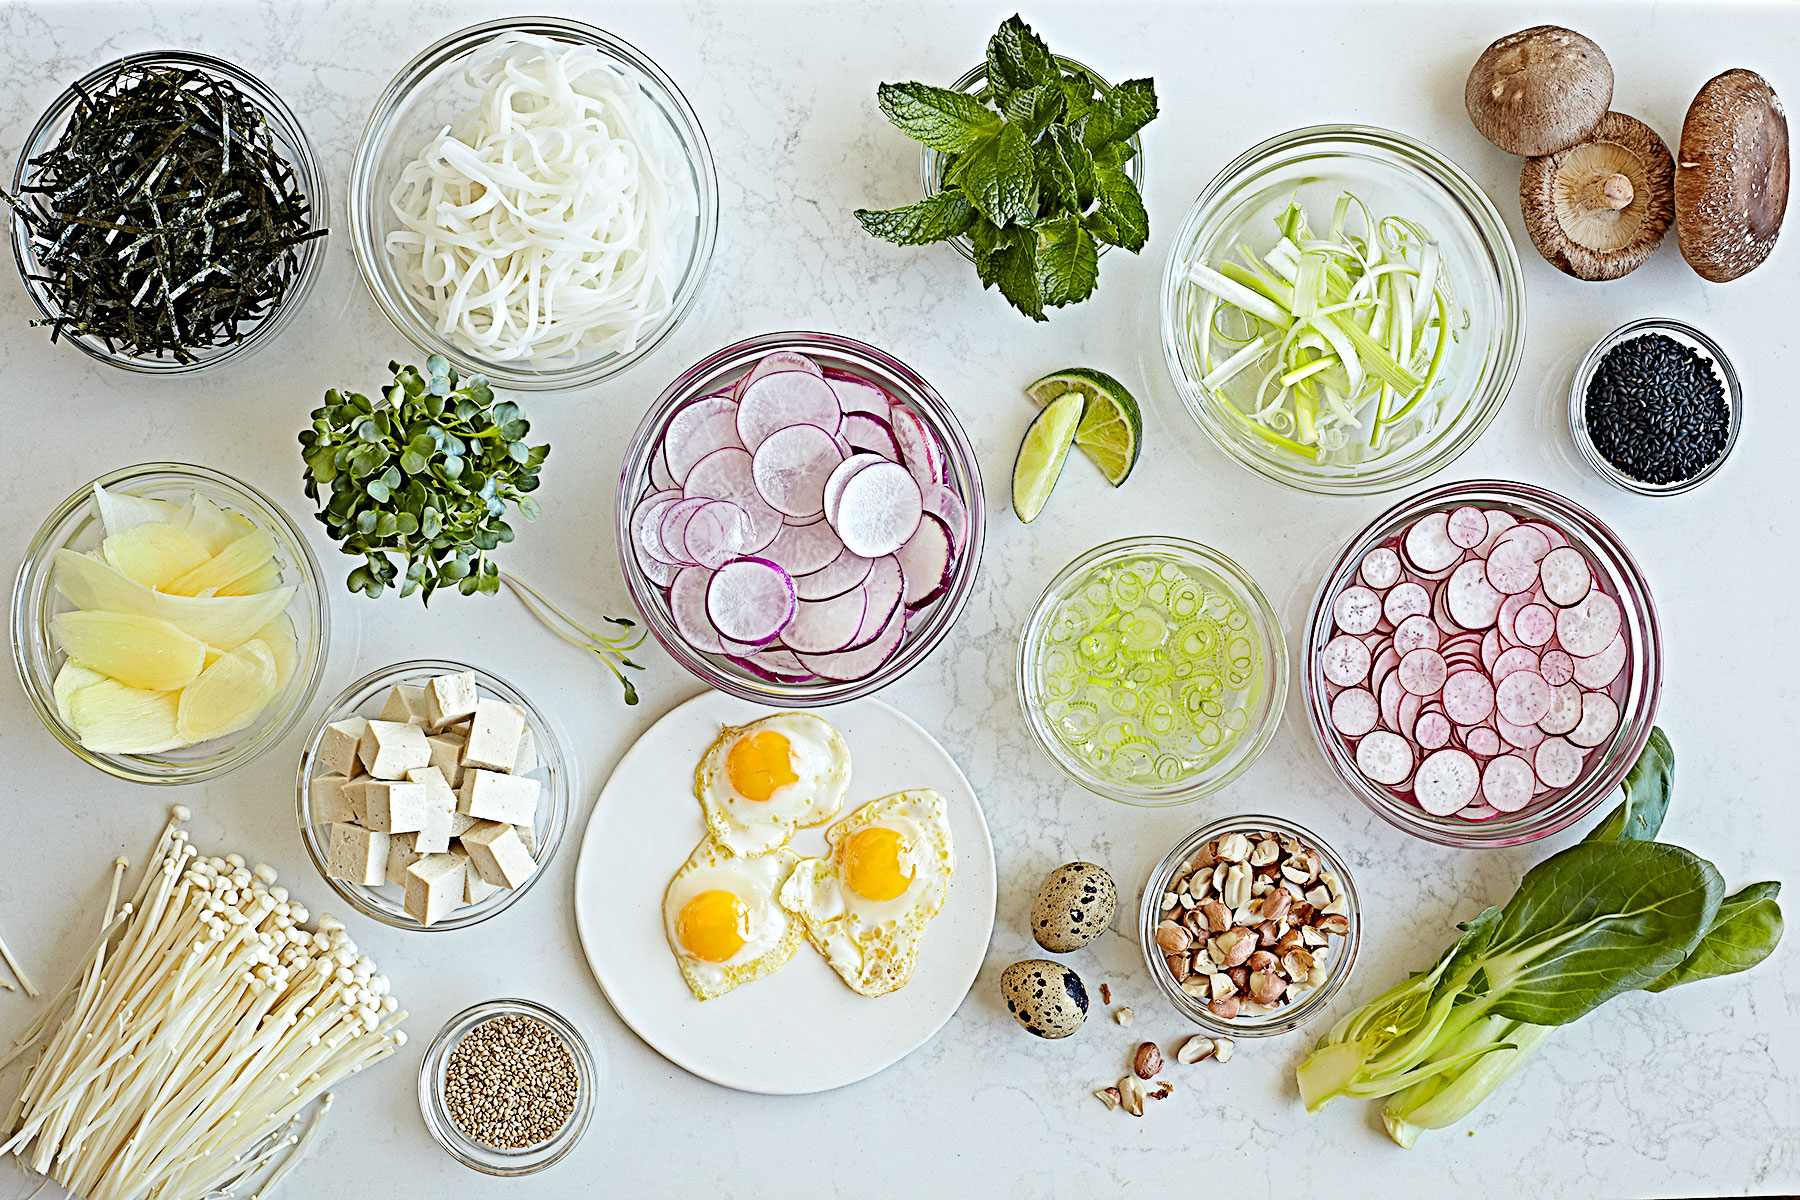 A spread of toppings for pho noodle soup including quail eggs, radishes, tofu, mushrooms, and sprouts.